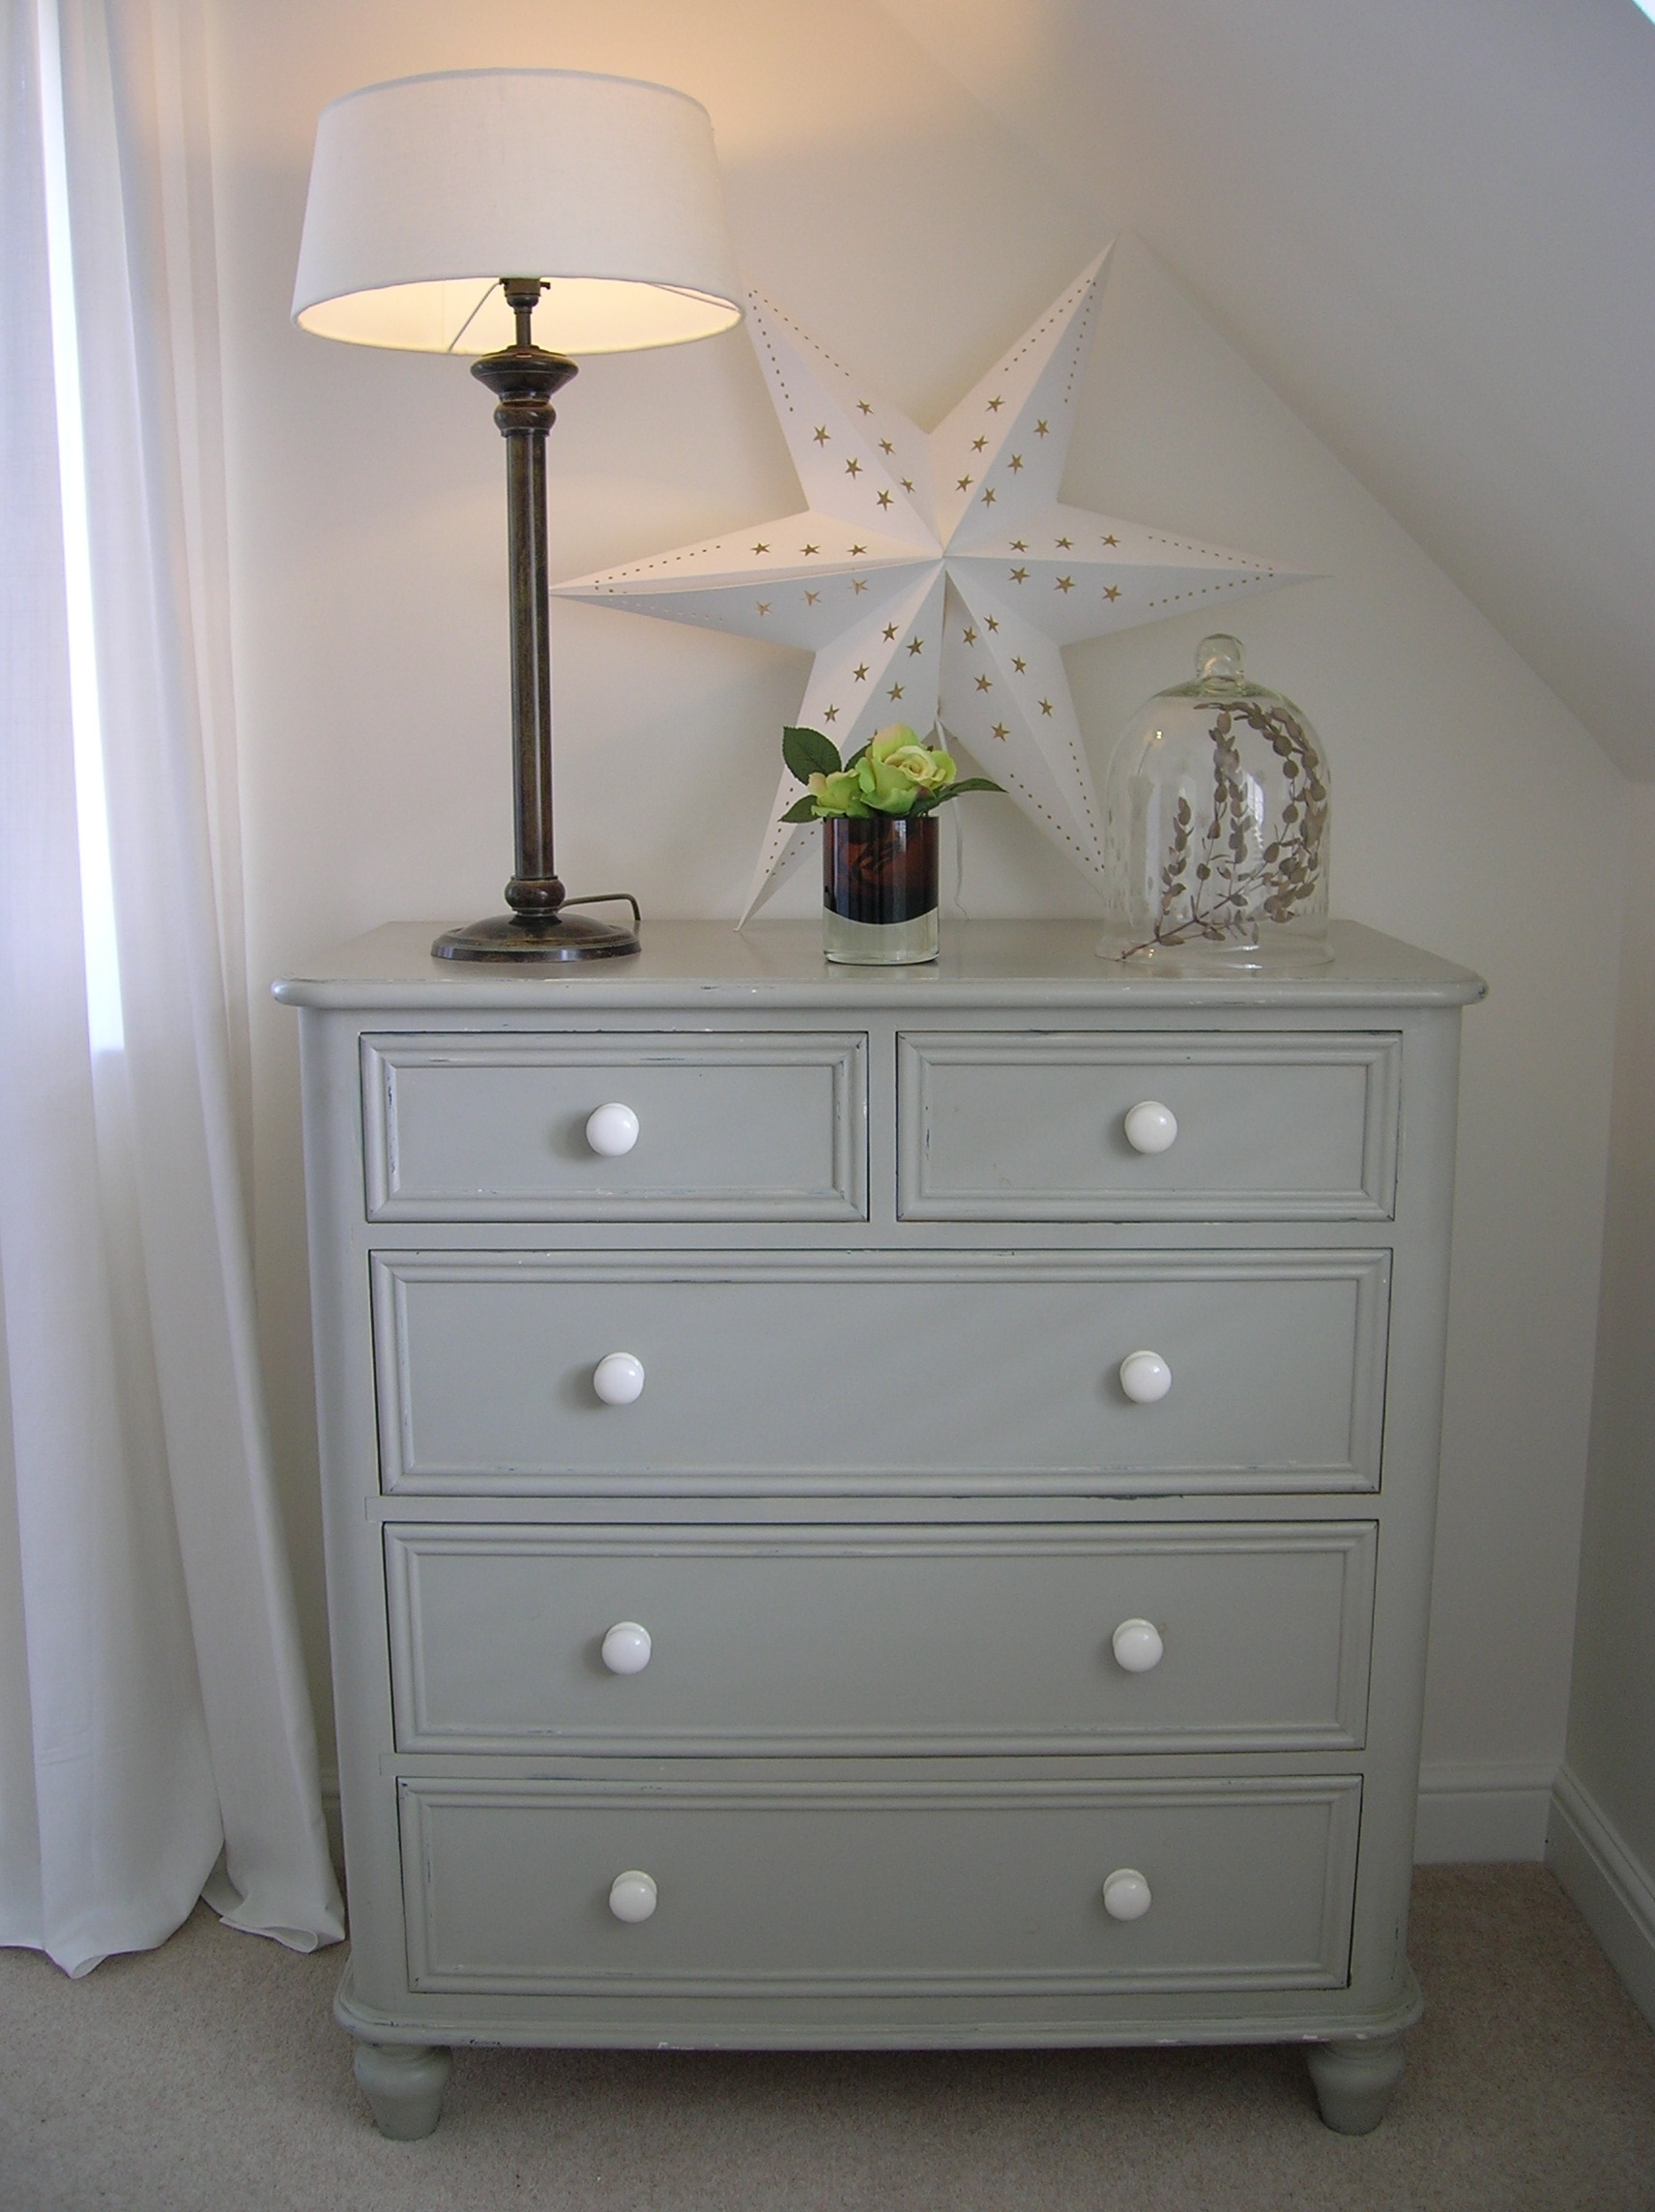 Farrow And Ball Painted Wardrobes Regarding Well Known Old Chest Of Drawers Painted In #farrow & Ball Hardwick White (View 6 of 15)